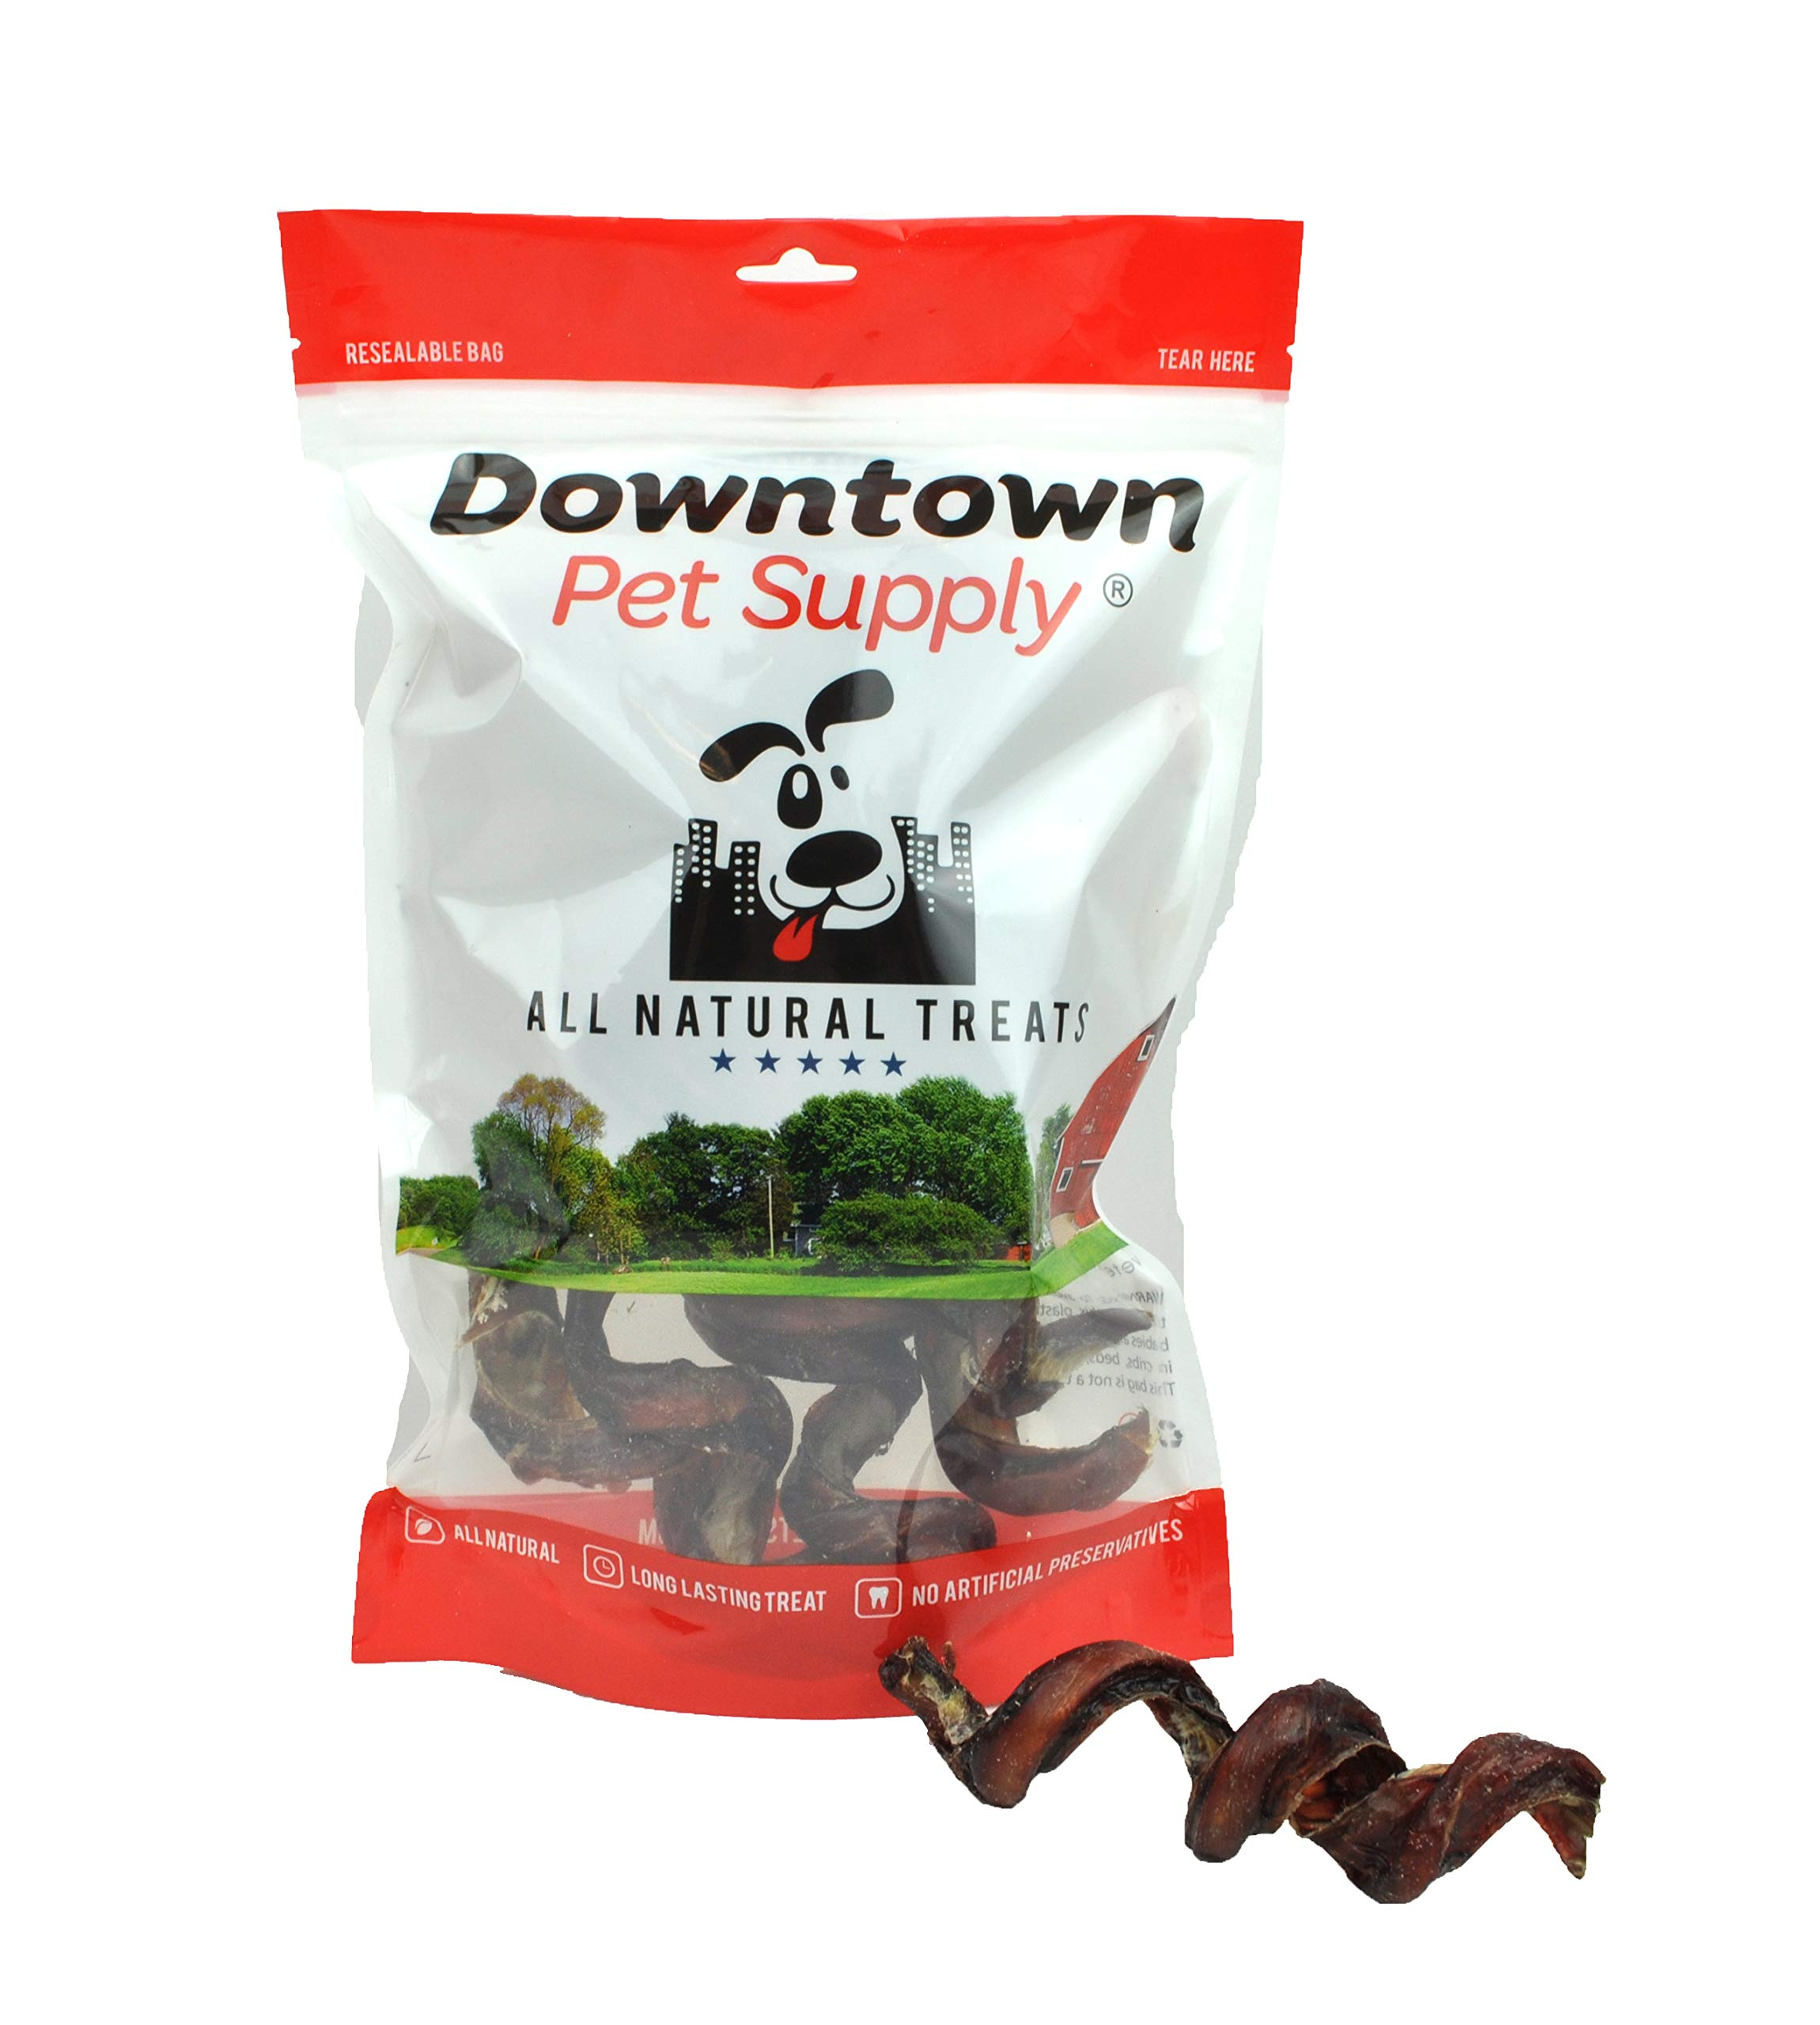 Downtown Pet Supply 4''-6'' Curly Bully Sticks, Bull Bully Springs - Regular Select Thick - Dog Chew Treats (10 Pack)